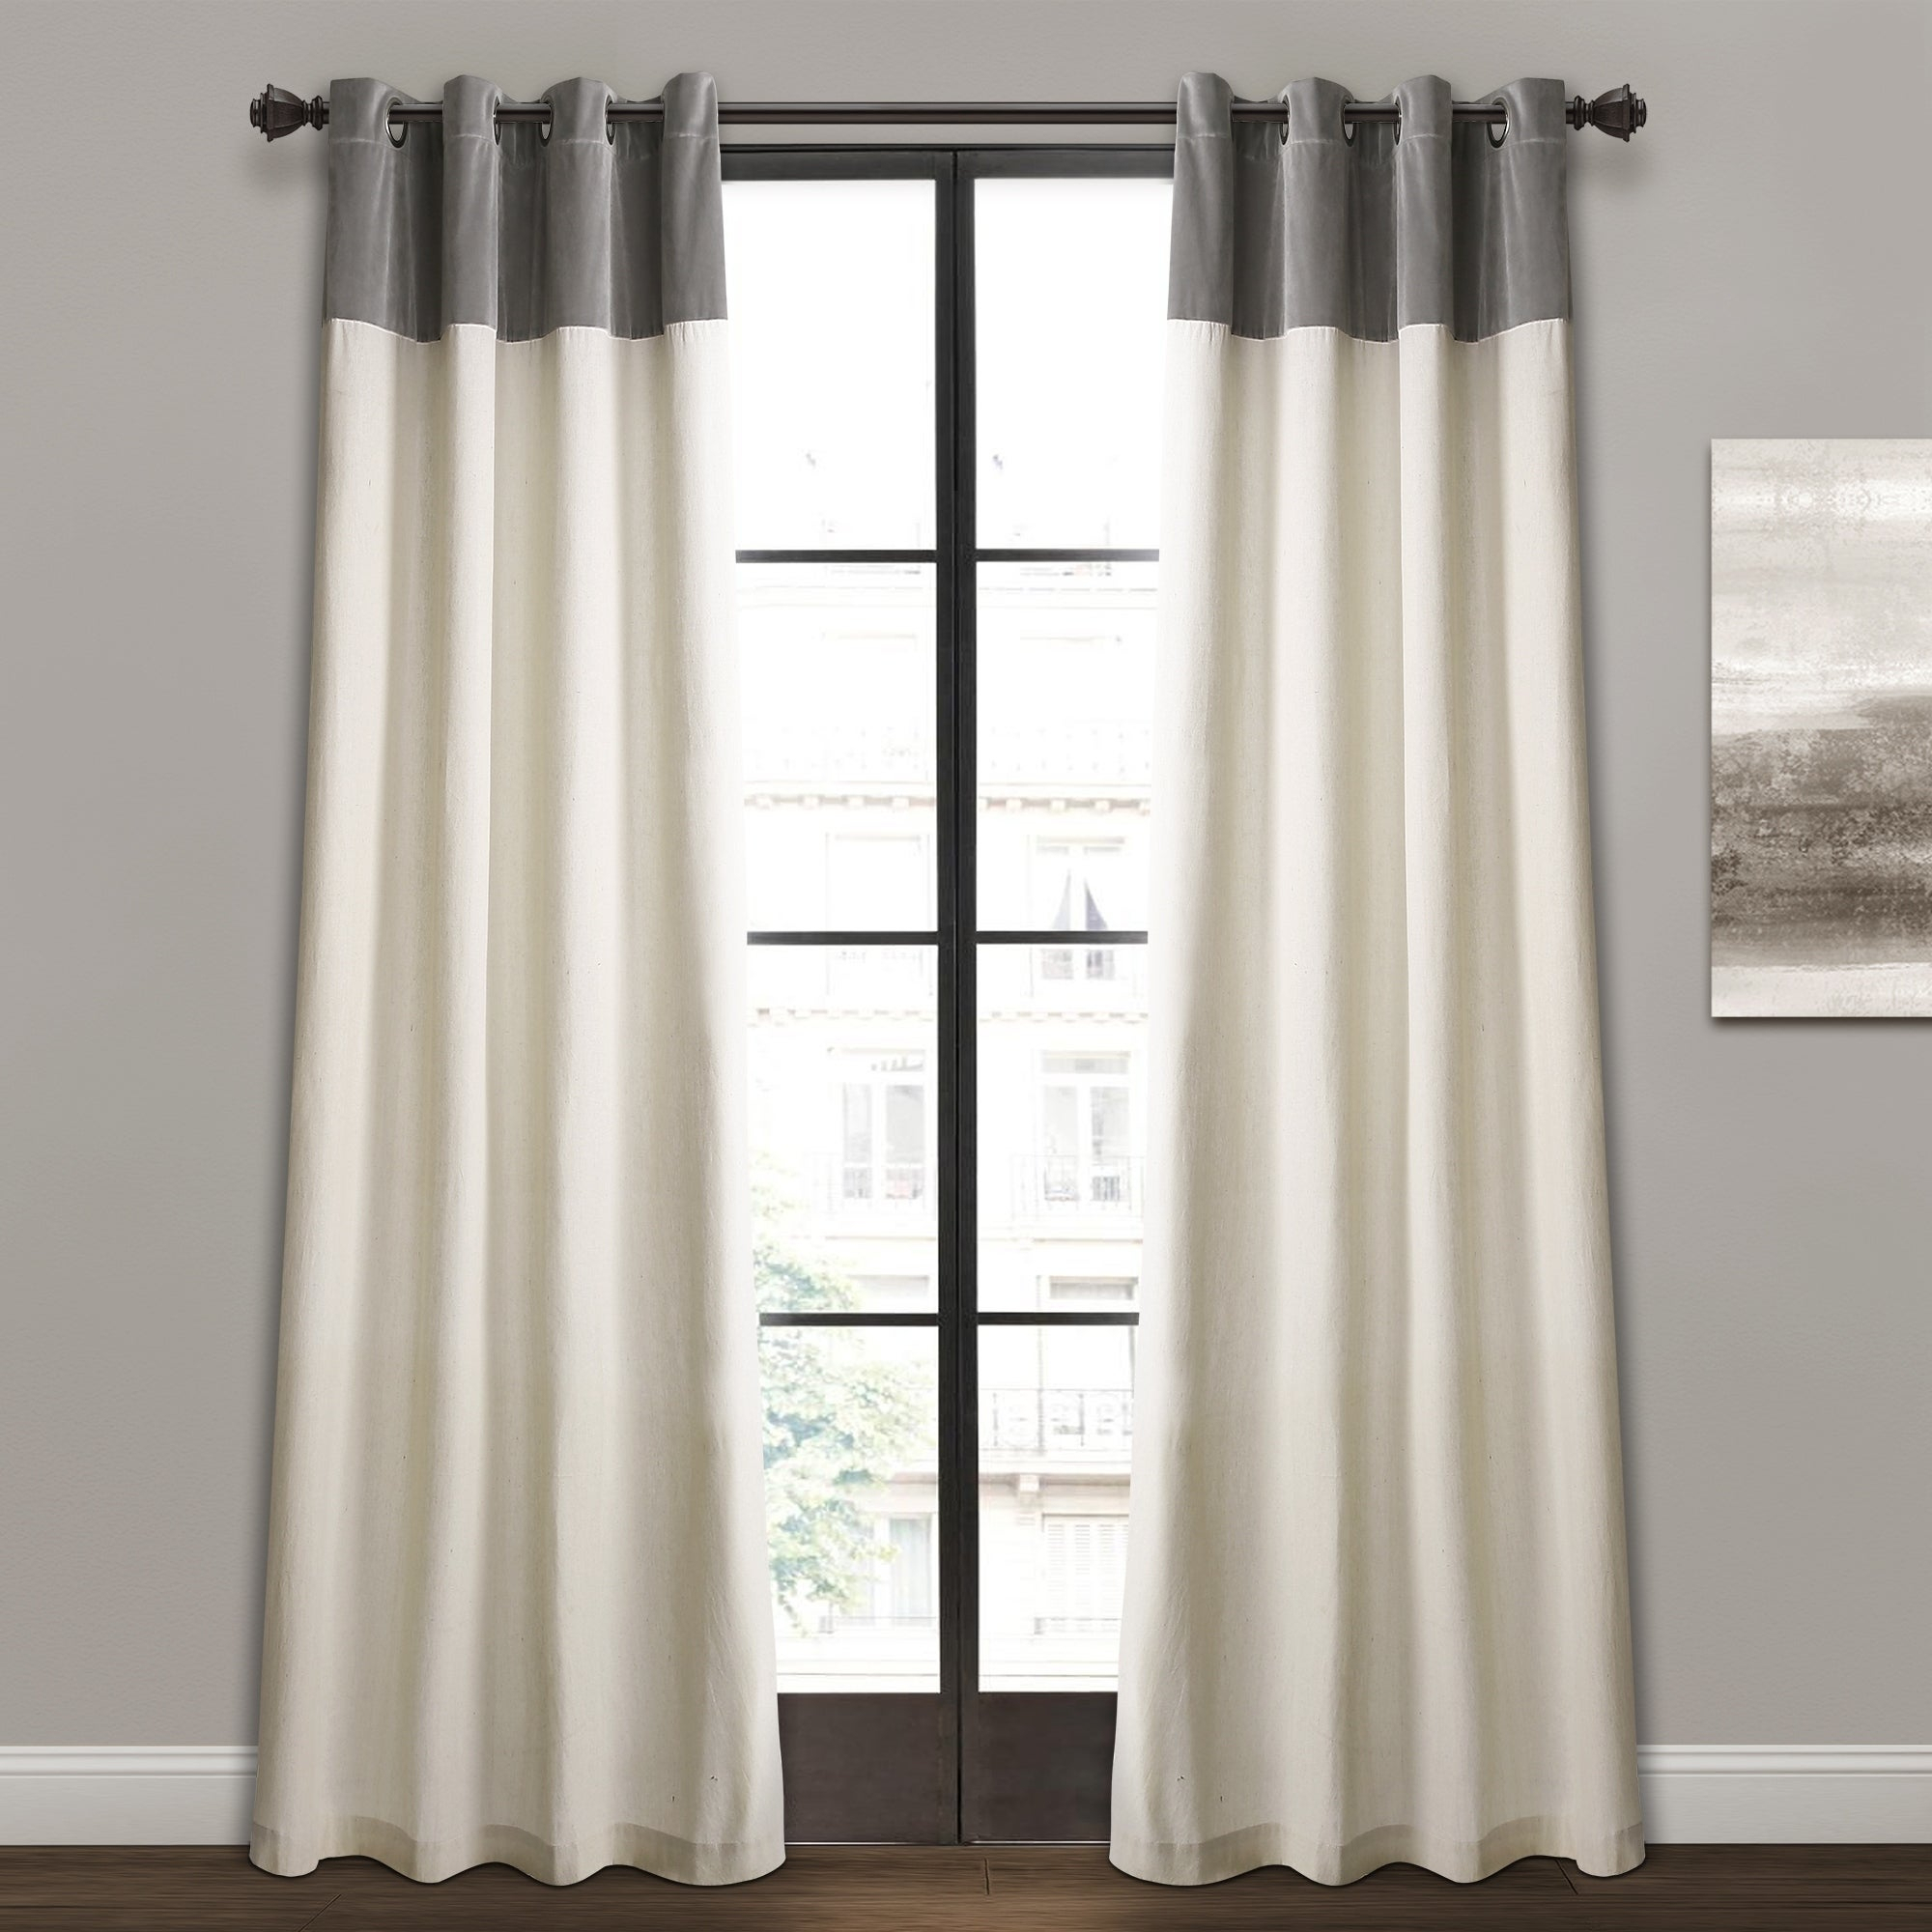 Details About Lush Decor Milo Linen Window Curtain Panel Pair For Lydia Ruffle Window Curtain Panel Pairs (View 12 of 20)